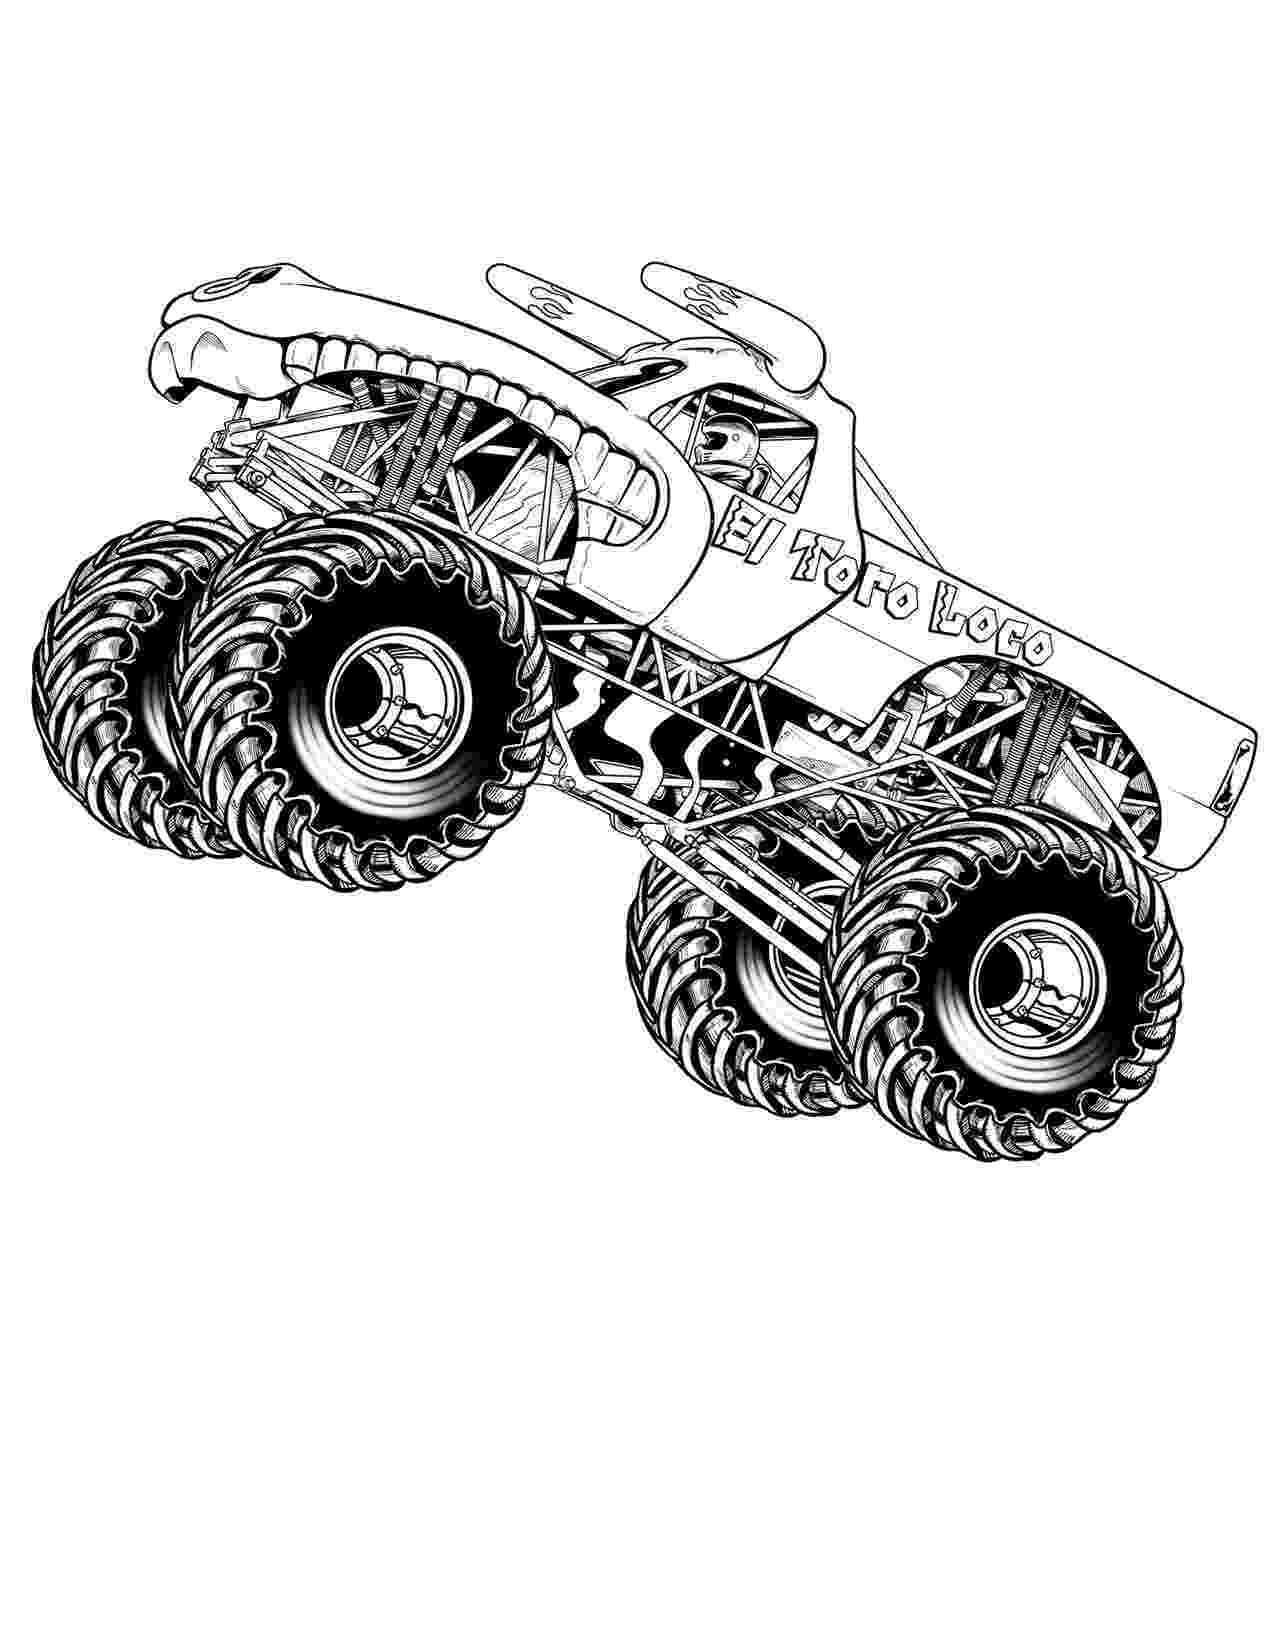 monster trucks colouring pages monster trucks printable coloring pages all for the boys pages monster colouring trucks